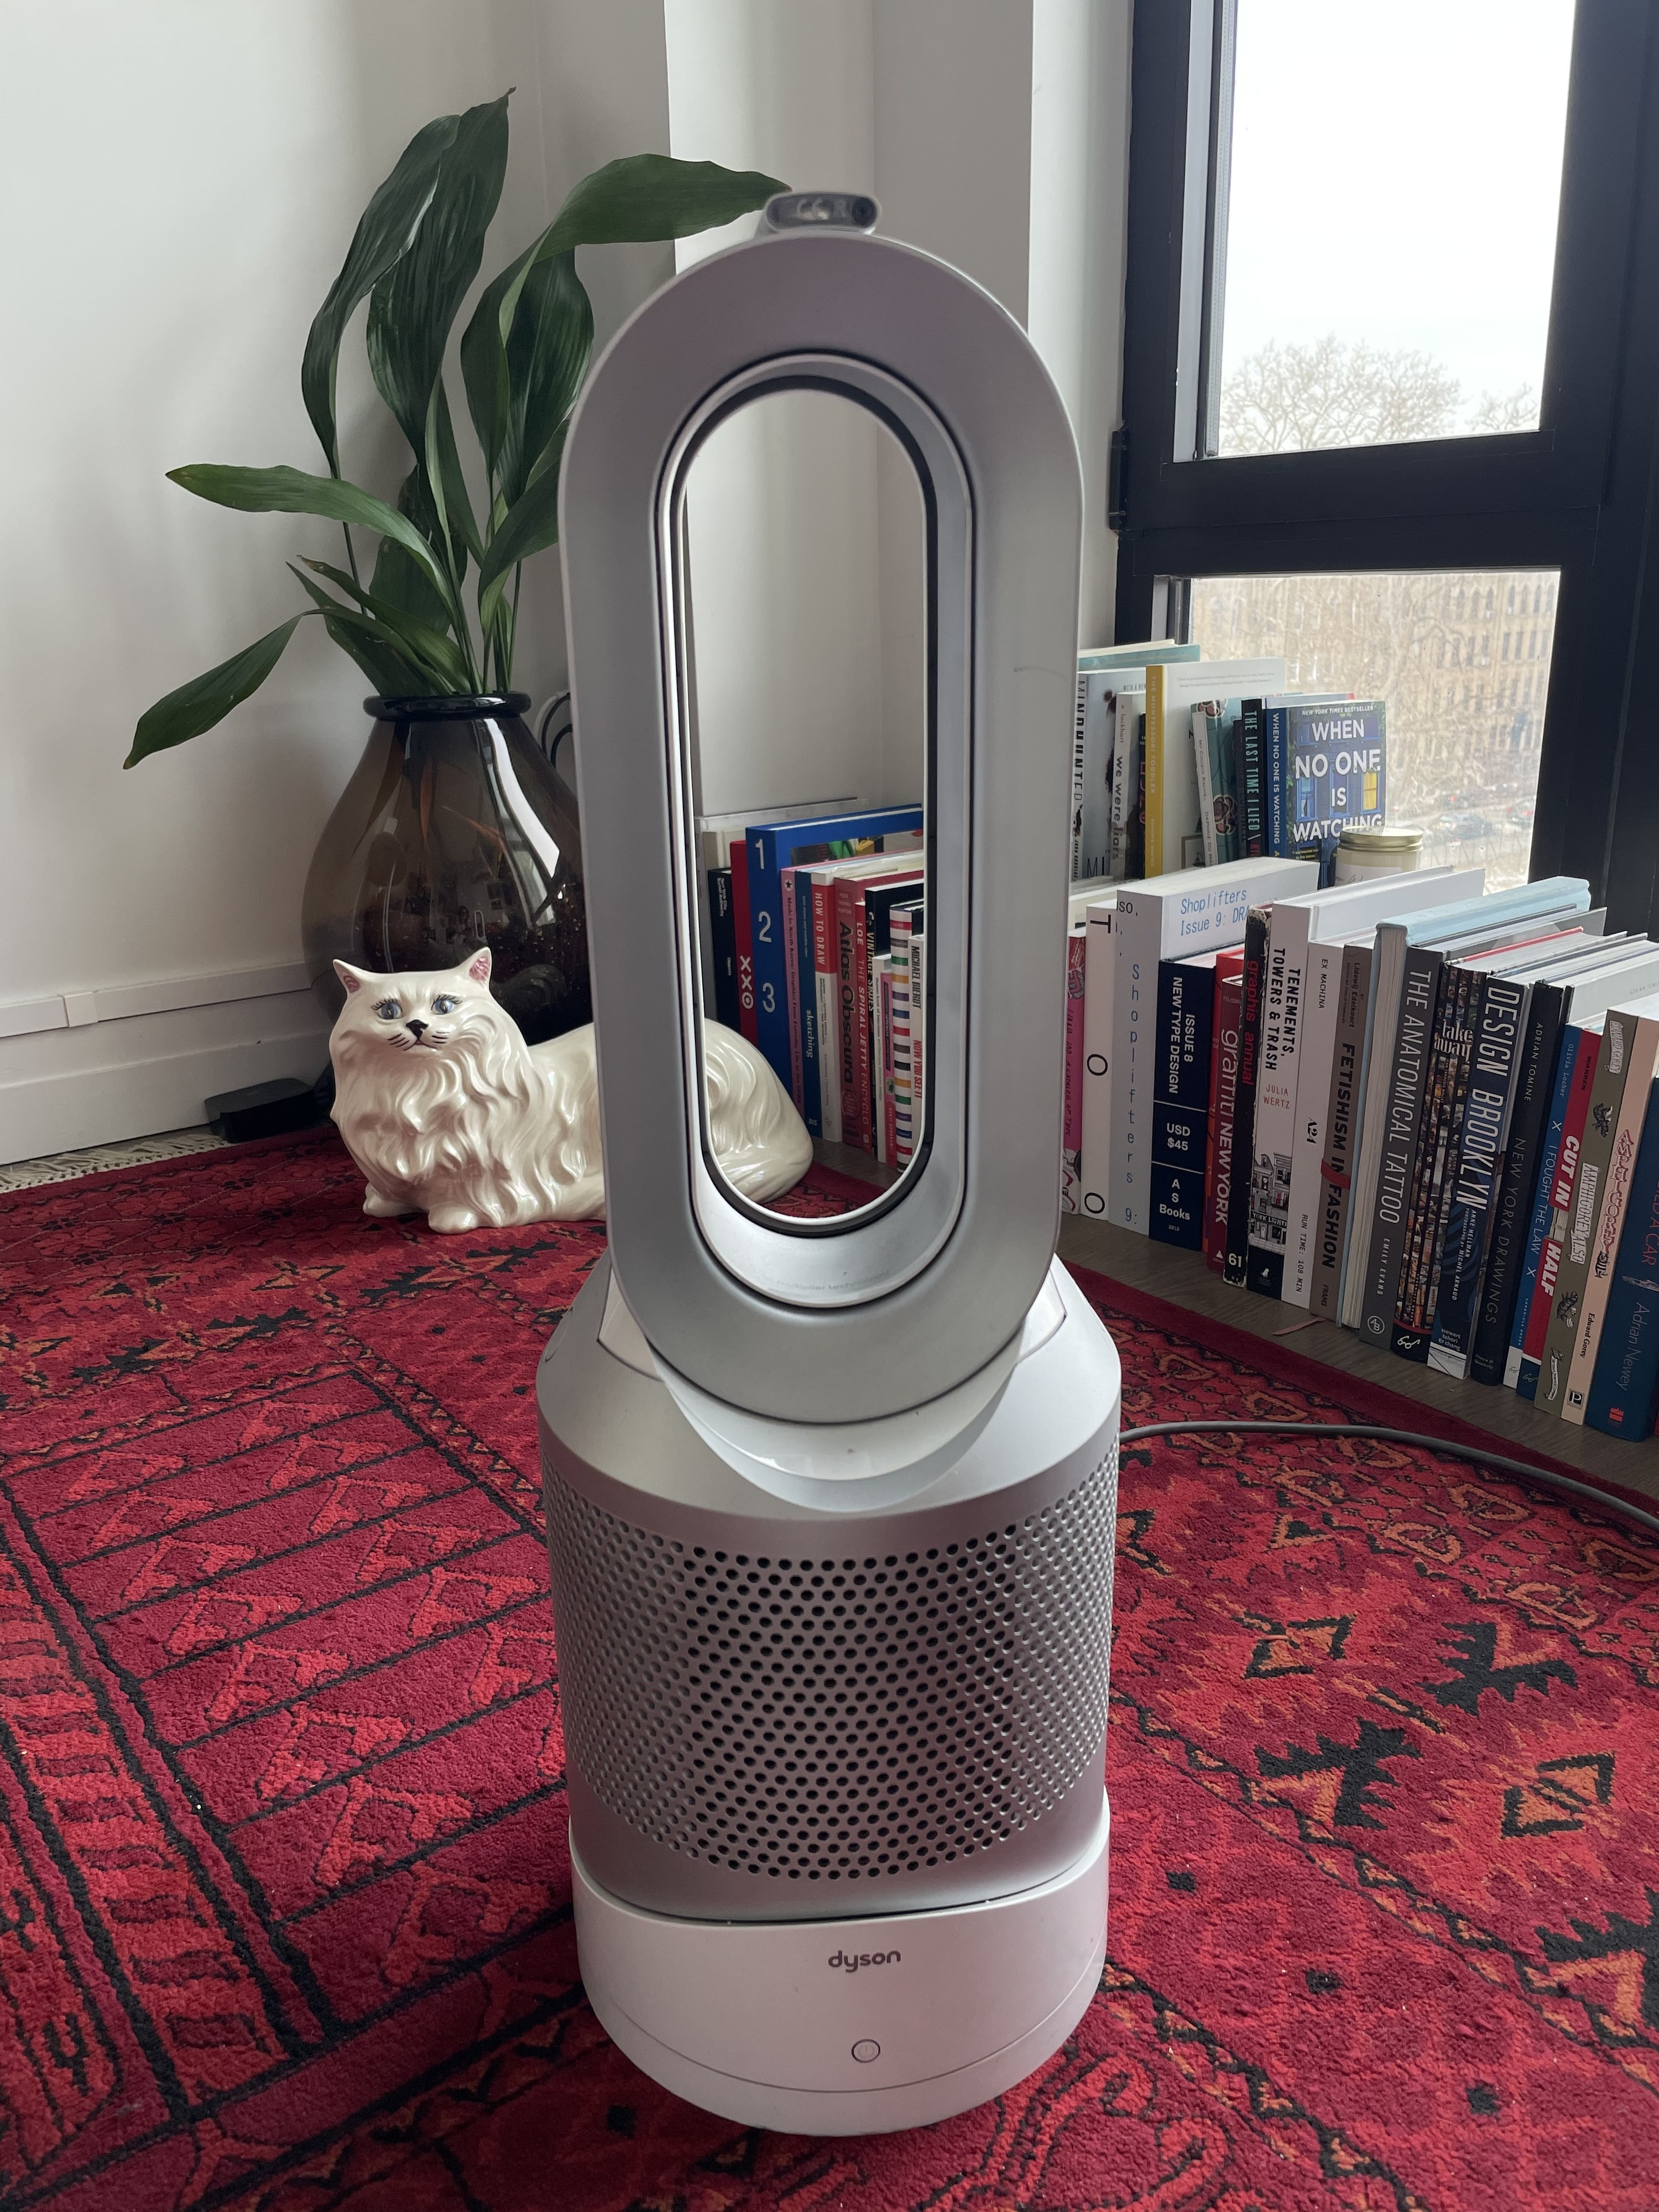 My Dyson in my living room. It is oval shaped with a small footprint and plugged into the wall.